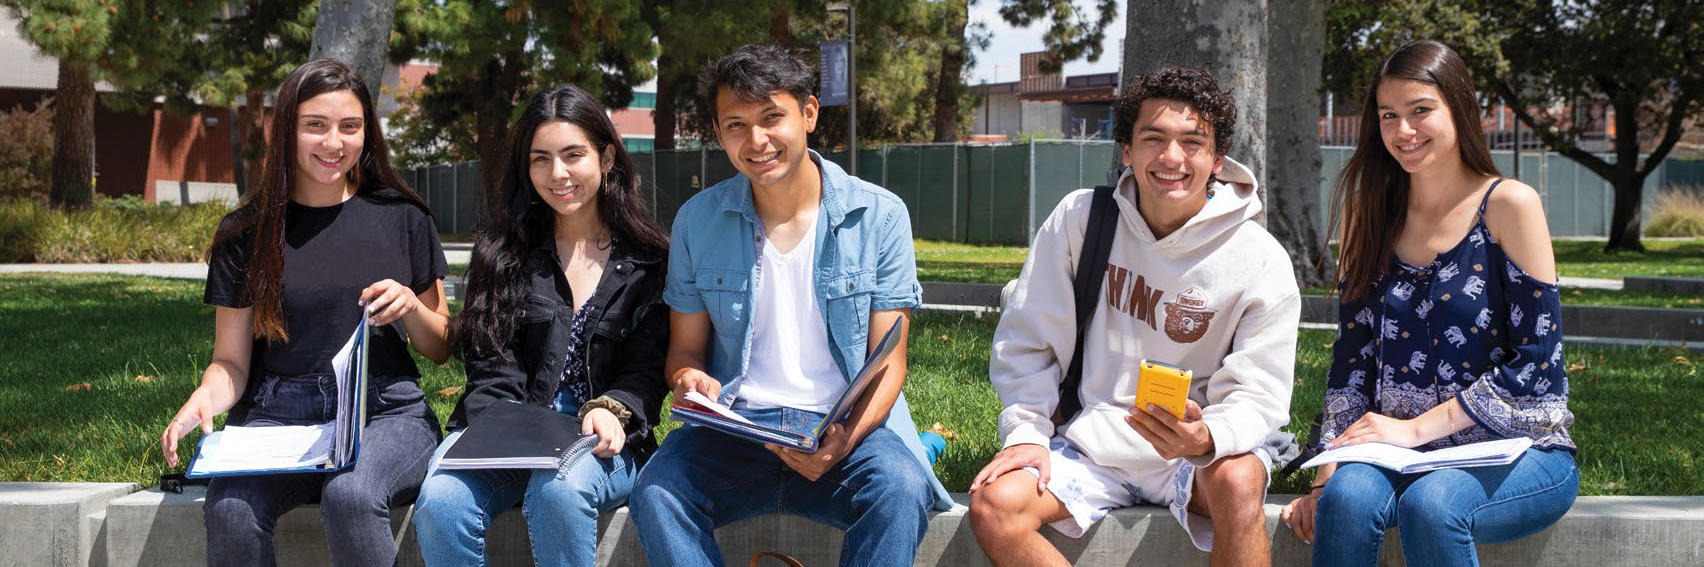 Students sitting on bench